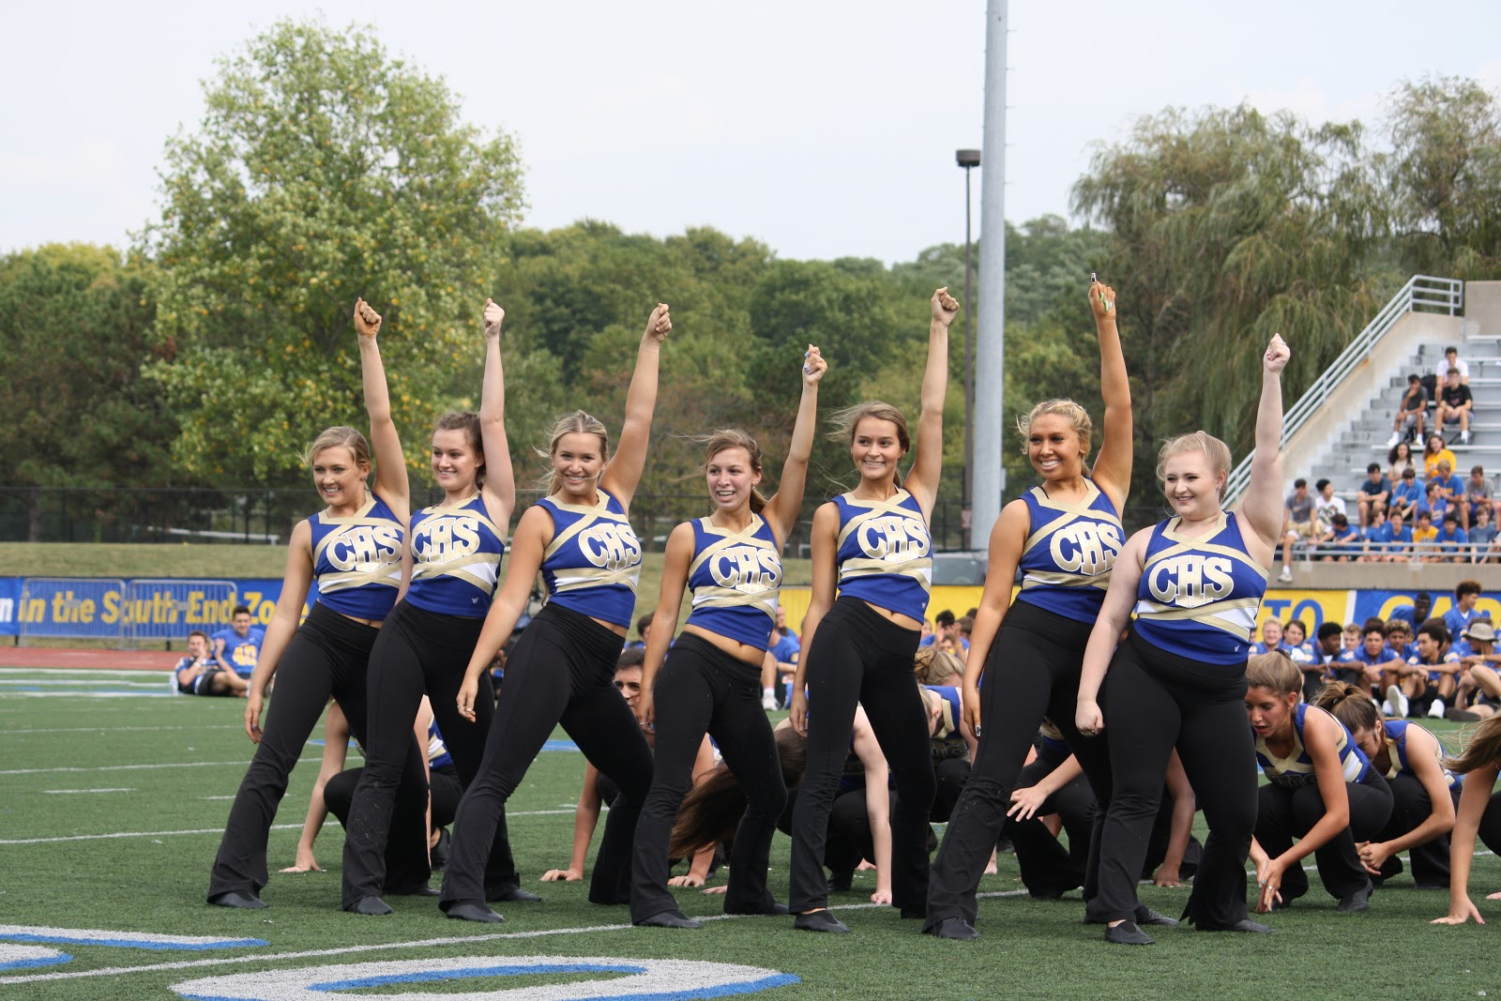 """The Charisma dance team performs at the 2019 Homecoming Pep Rally. The Pep Rally performance was the final performance of the season. """"I really enjoyed my last season on Charisma this year,"""" said Avery Iverson, two-year club member and senior.."""